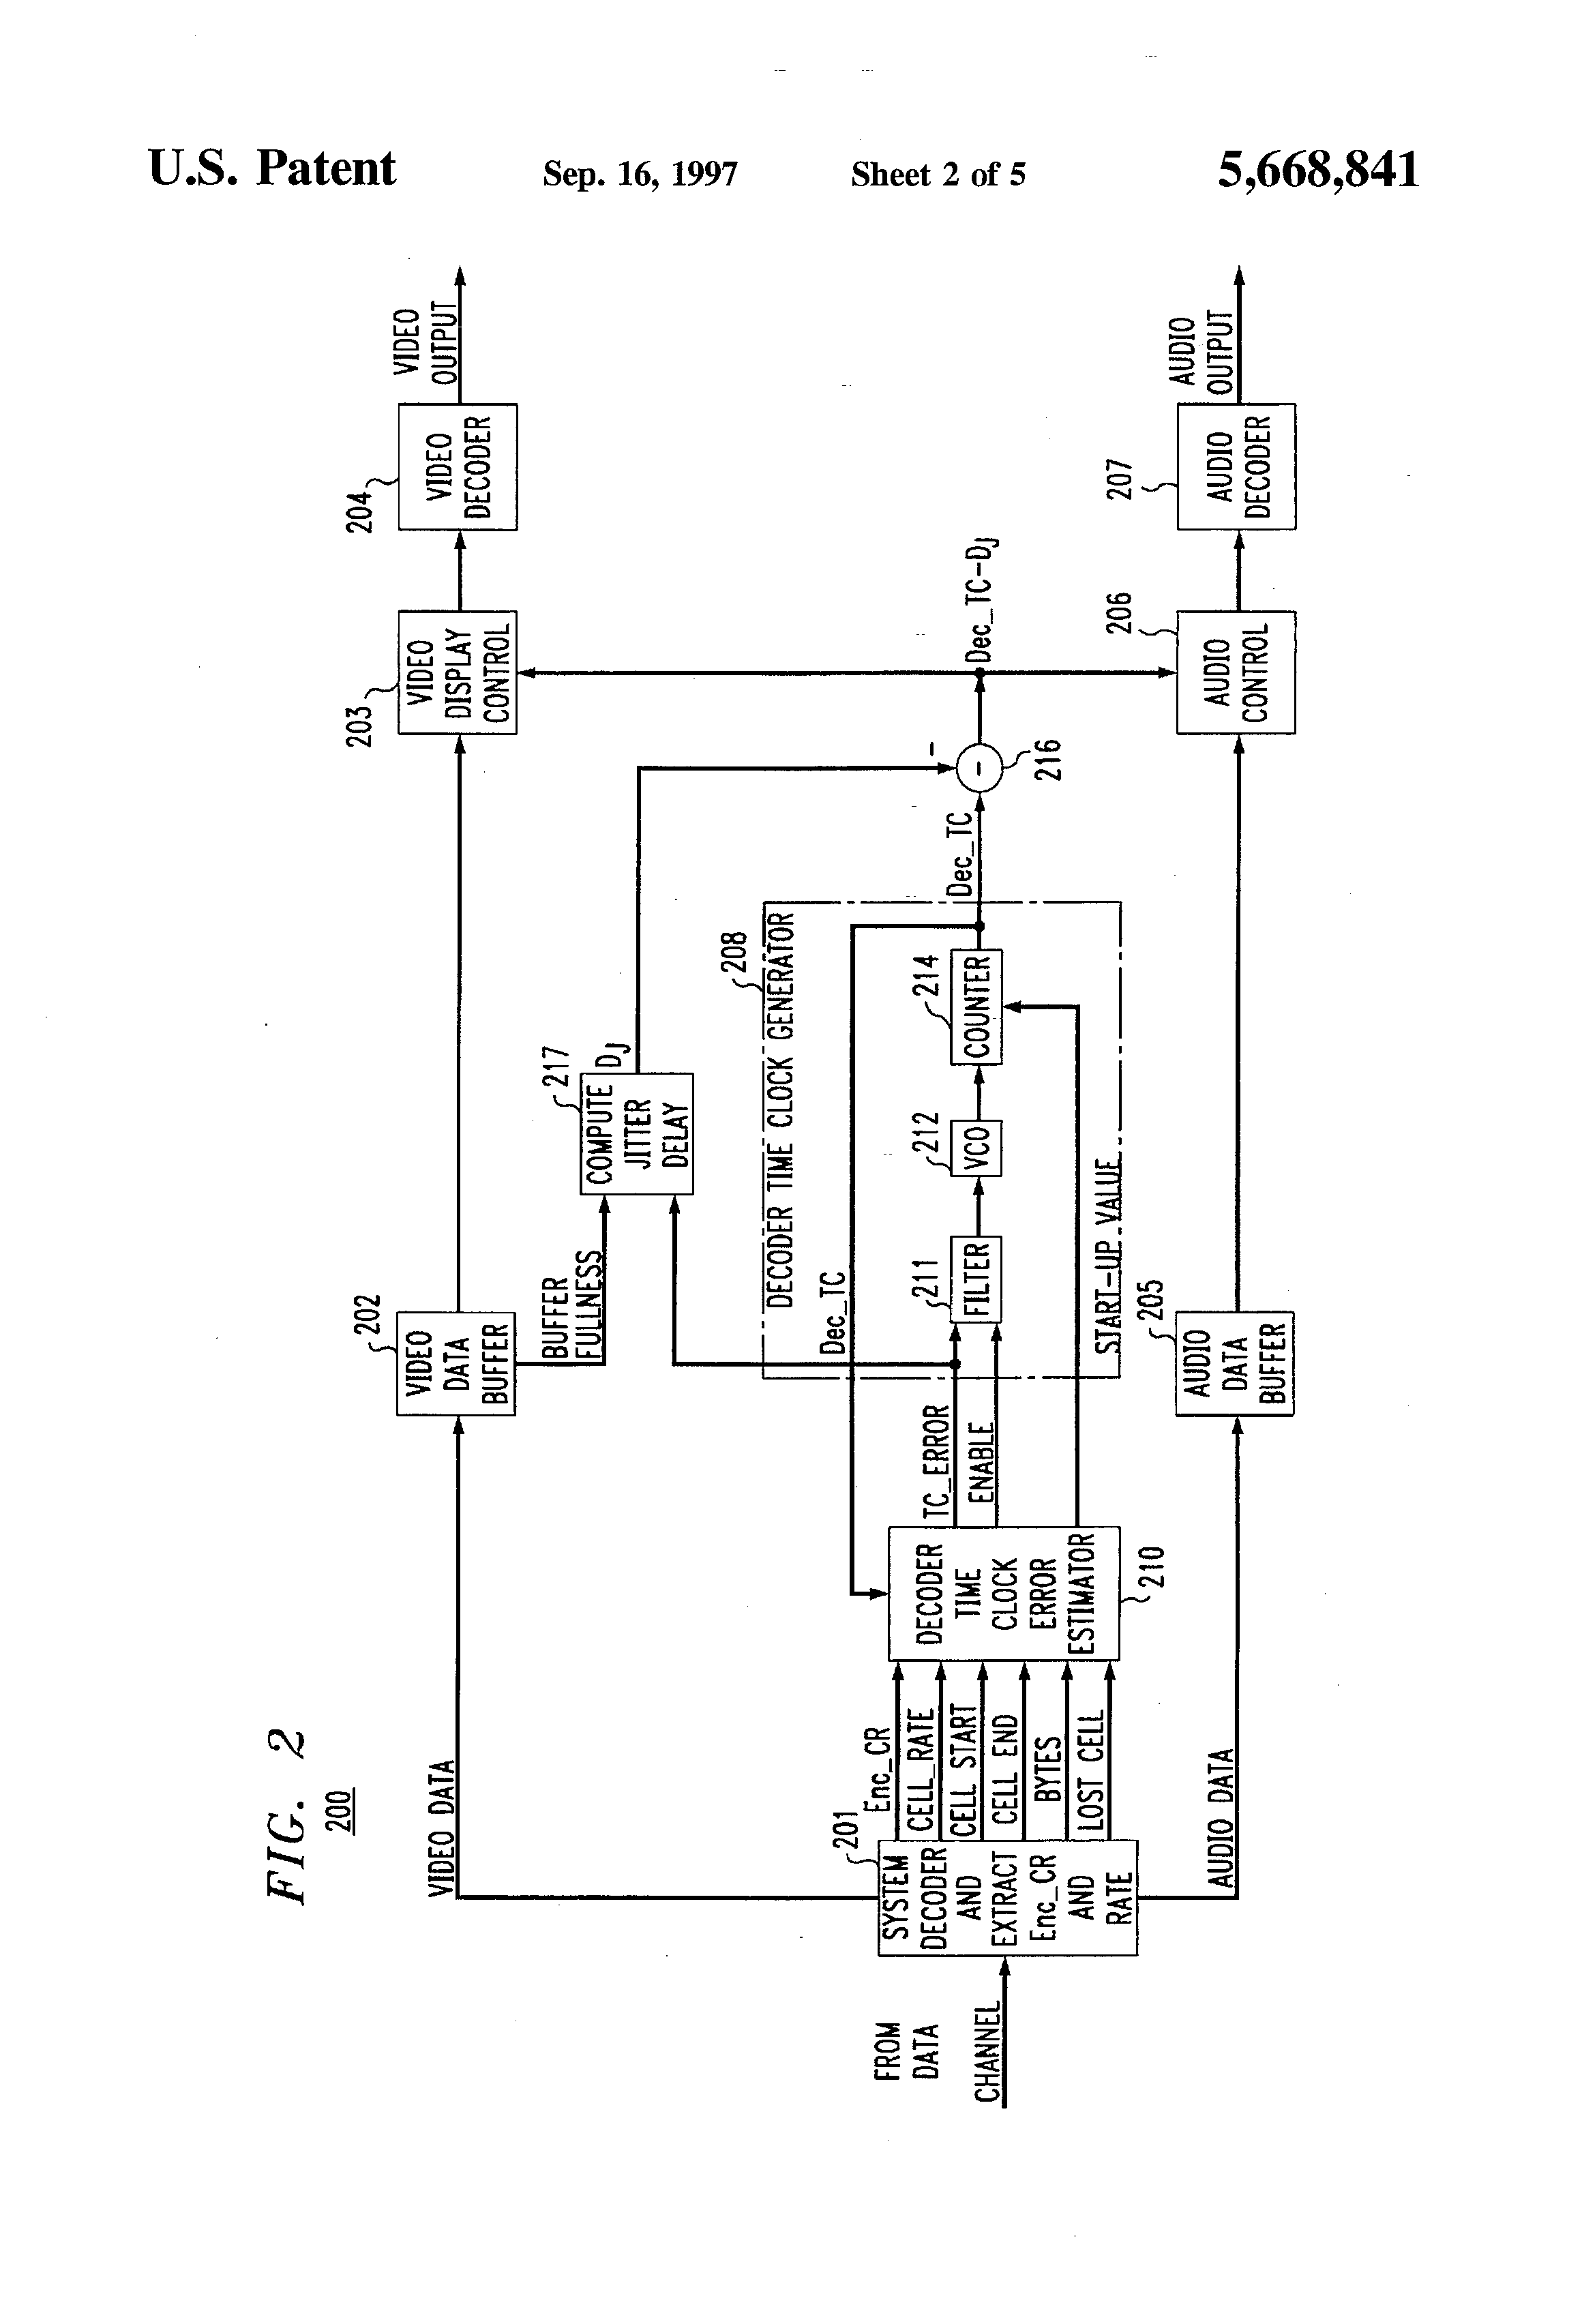 Patent Us5668841 Timing Recovery For Variable Bit Rate Video On Remoteencoder Transmitter Circuit Drawing